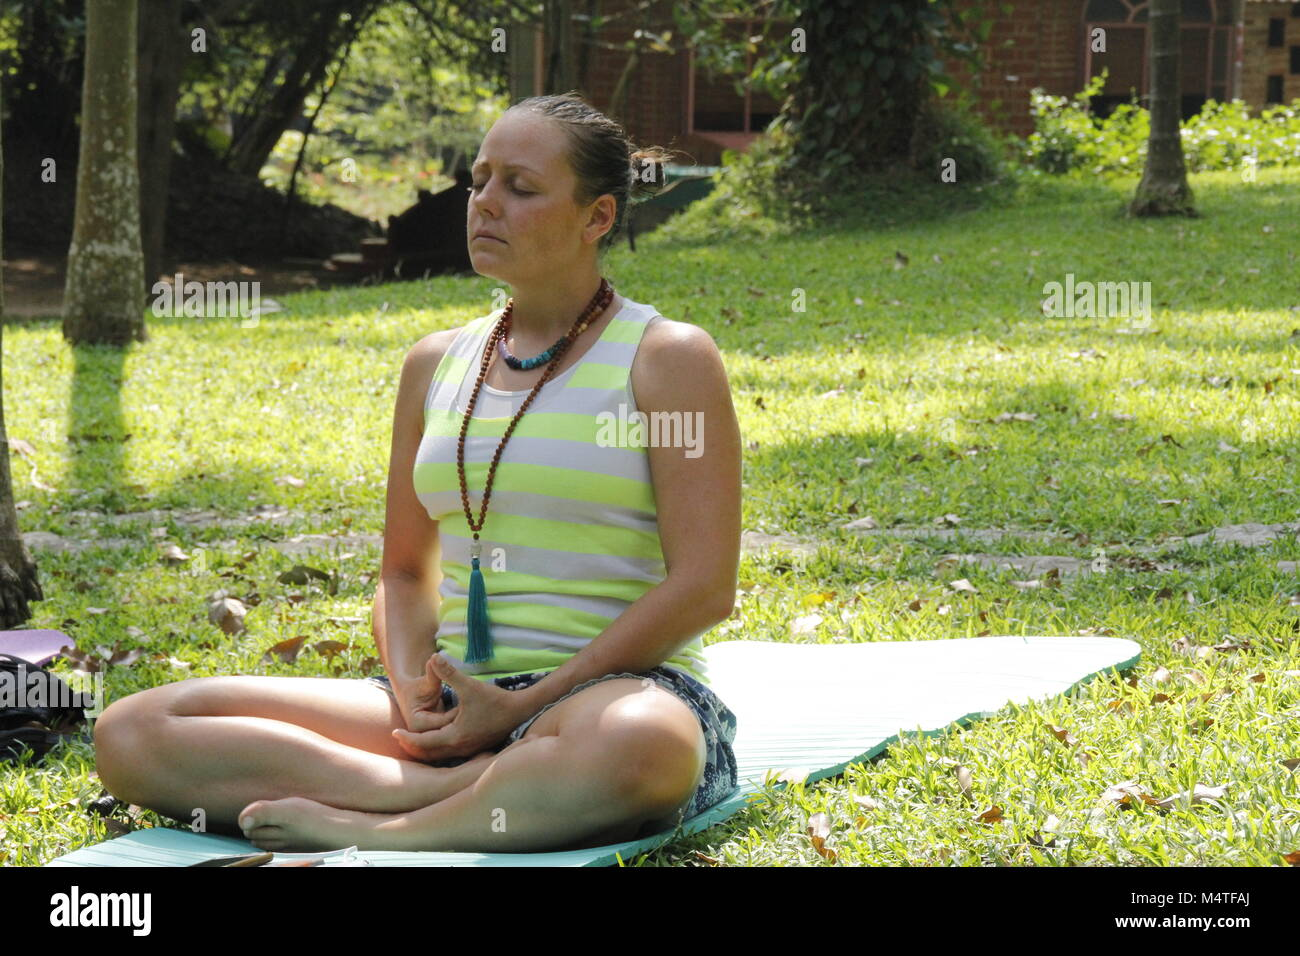 White woman meditating outdoors - Stock Image